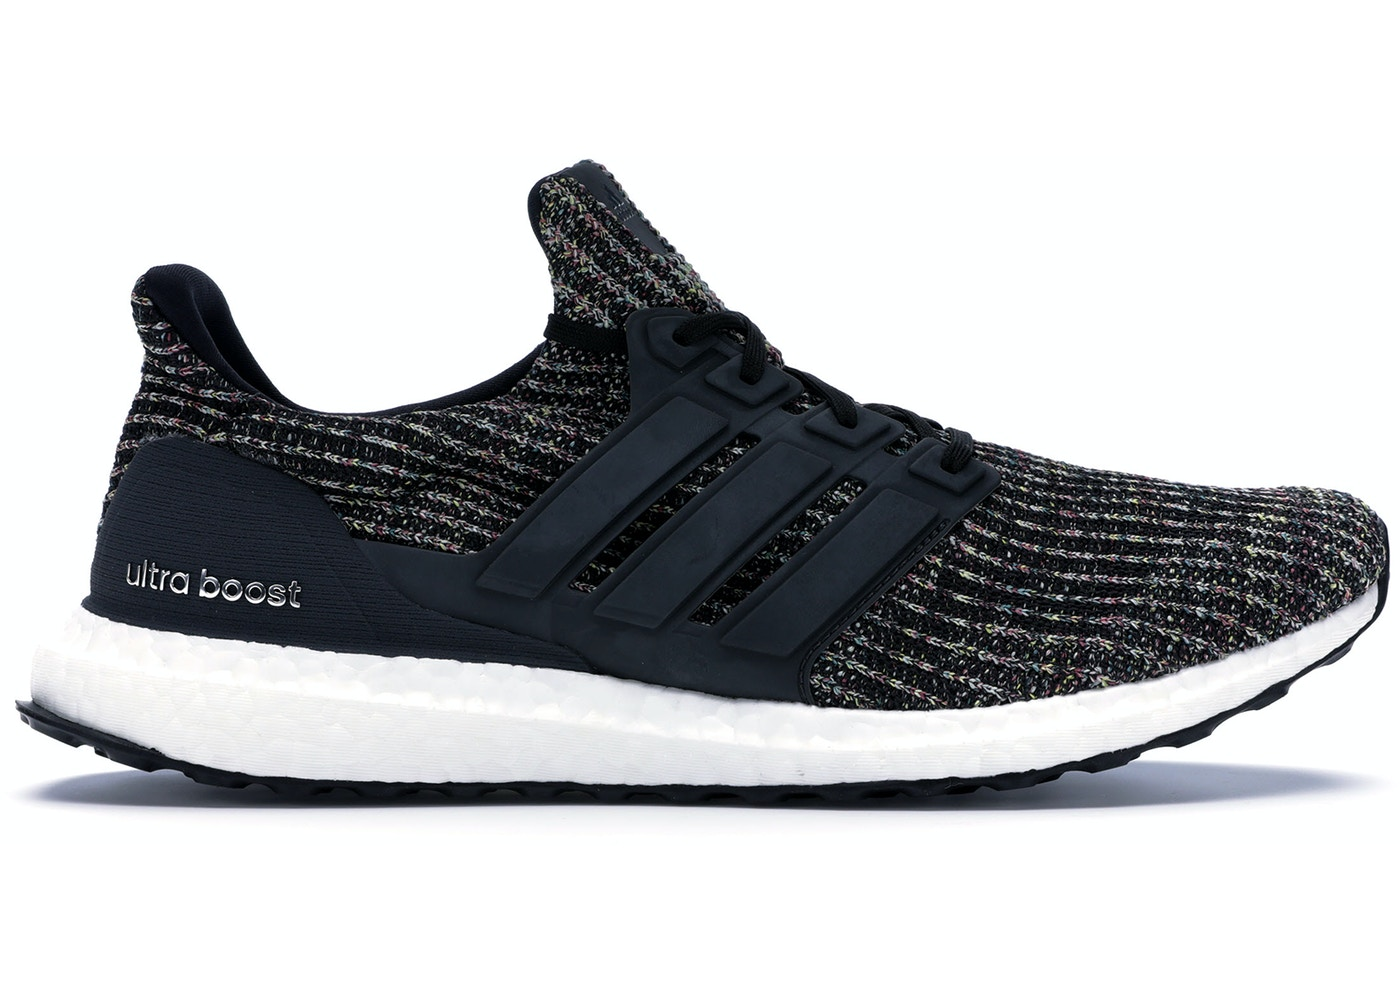 8084372a842 adidas Ultra Boost 4.0 Black Multi-Color NYC Bodegas - CM8110